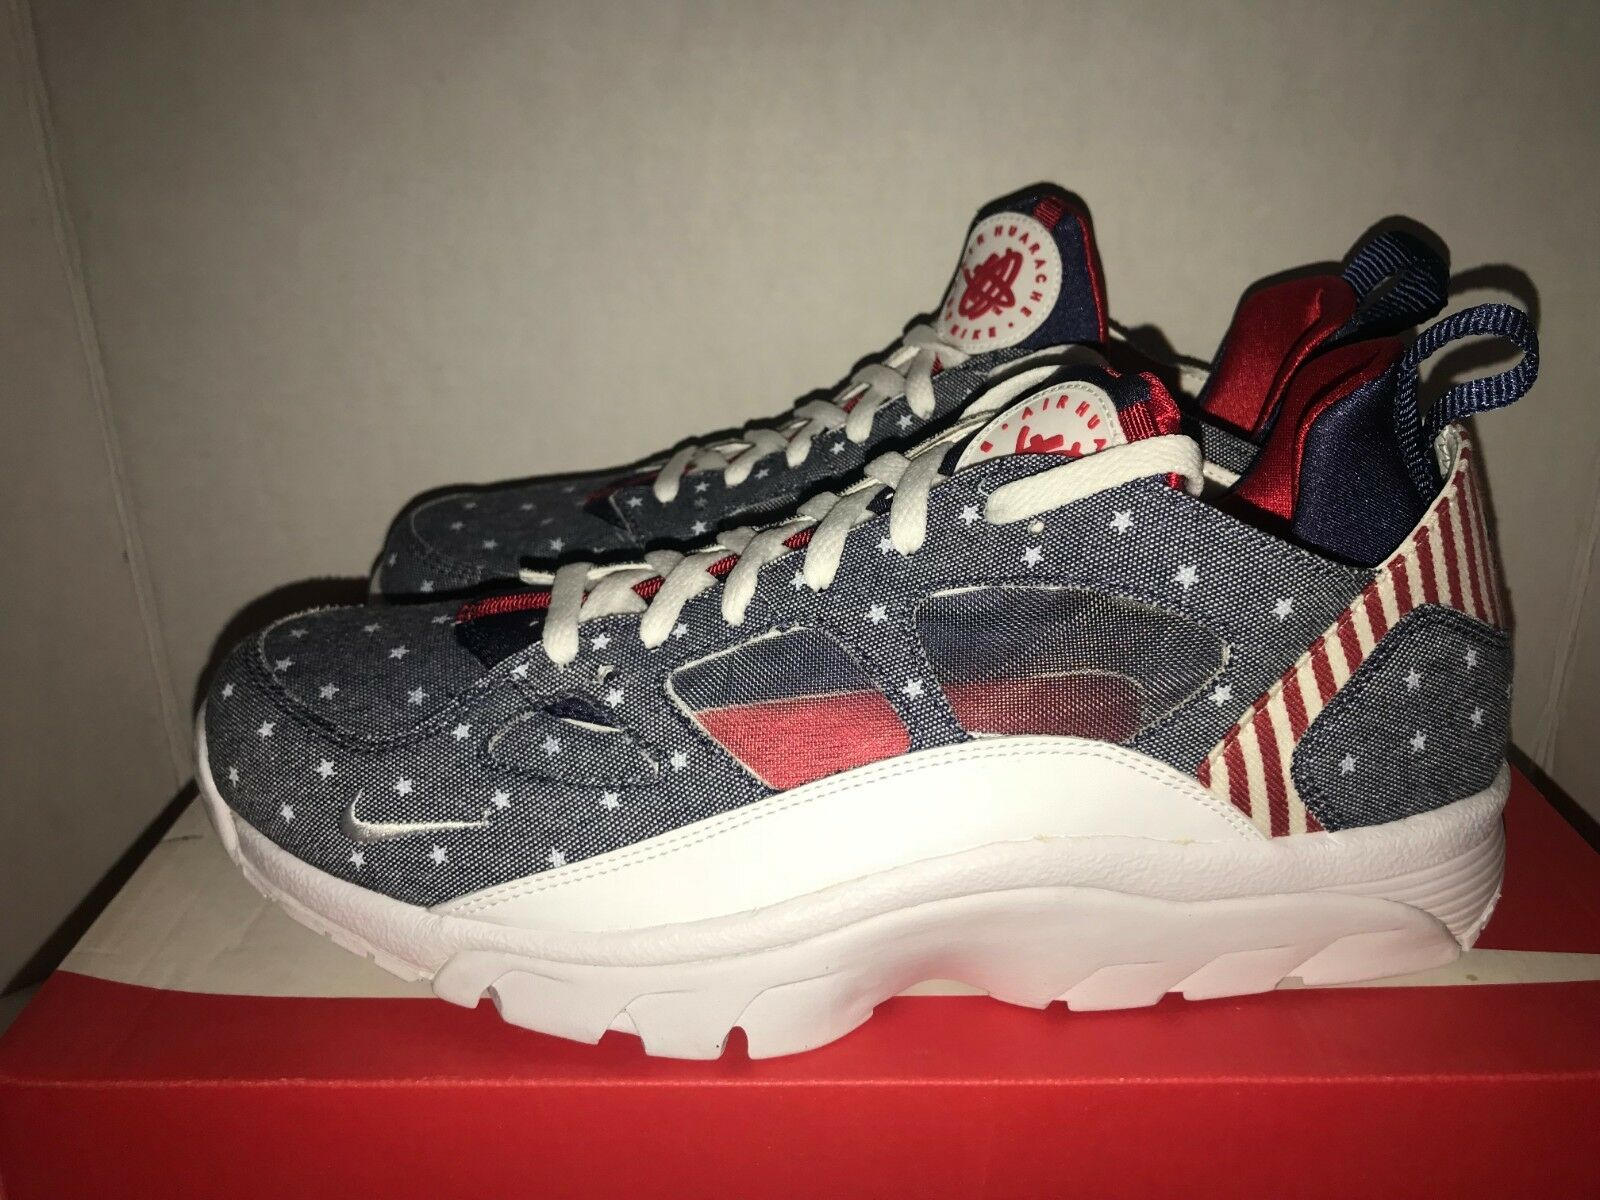 Nike Air Trainer Huarache Low QS Men's Size 11 Independence Day